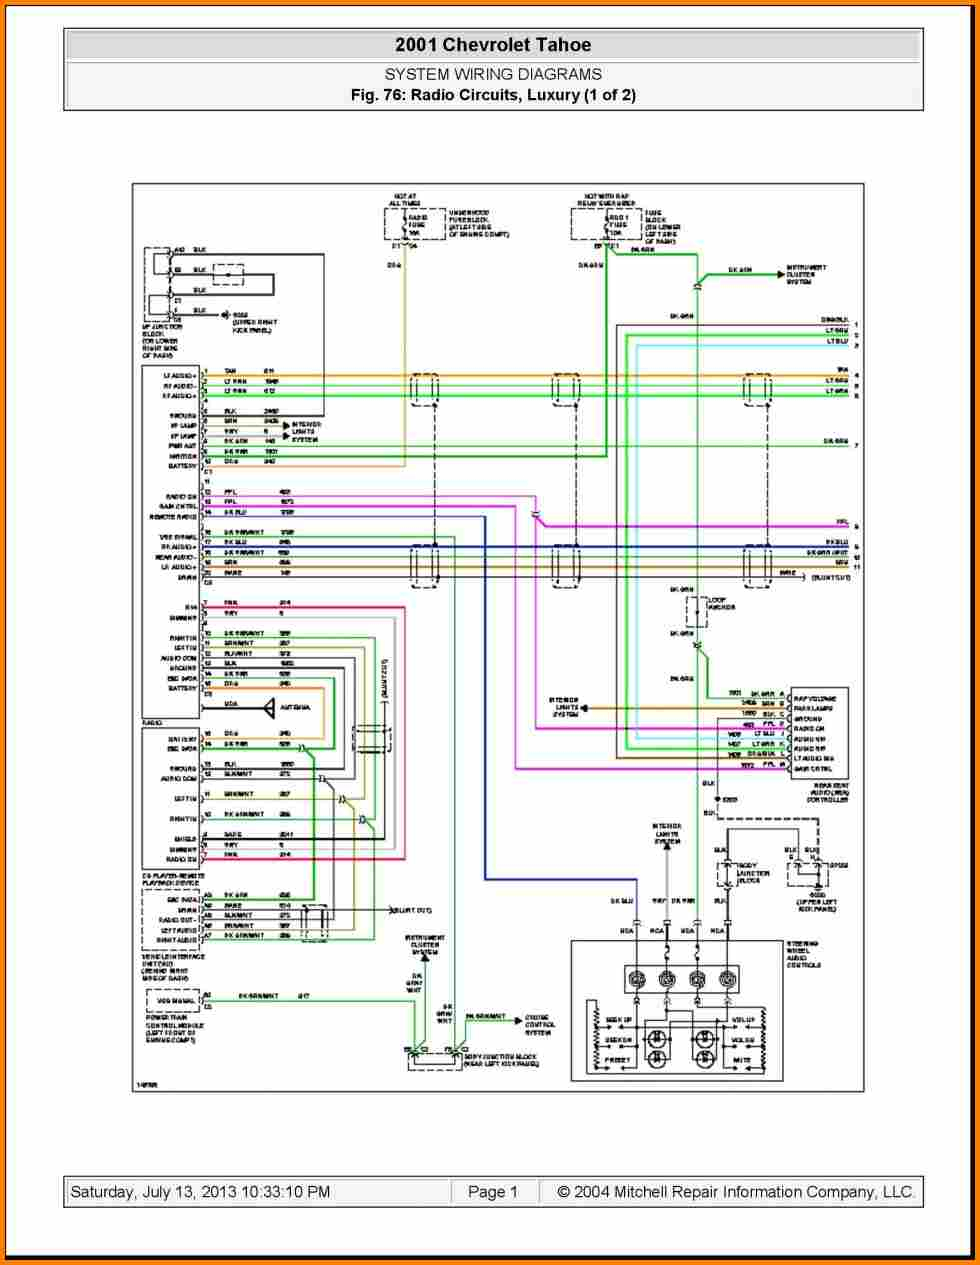 2004 silverado bose radio wiring diagram Collection-2003 Chevy Silverado Wiring Diagram 2004 Chevrolet Radio Get Free Template 2005 Gmc Sierra Bose Tail Light Quality 970—1255 For Stereo 10-e